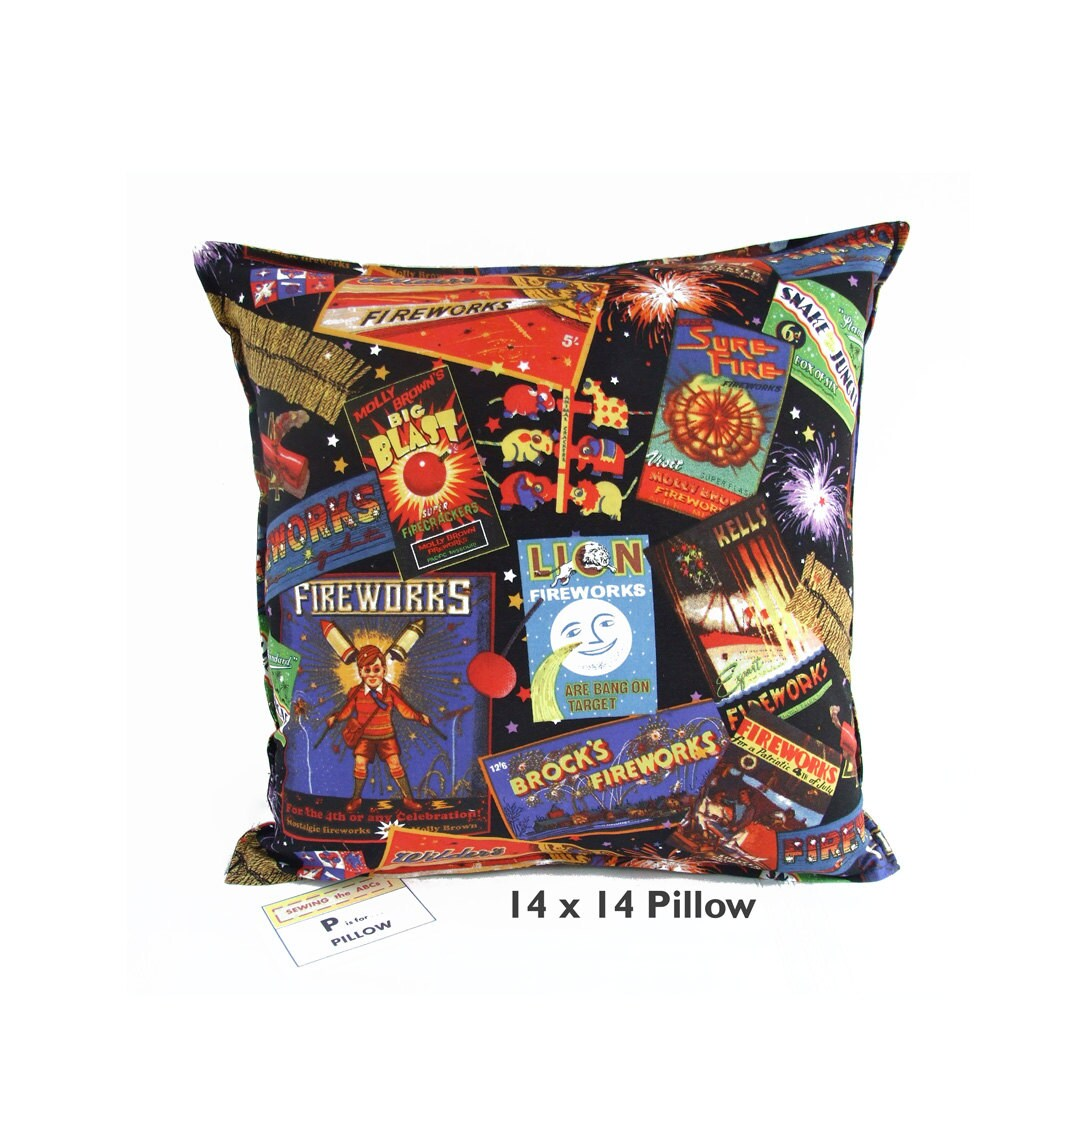 Man Cave Pillow With Cup Holder : Fireworks pillow cover man cave decor pillows mens